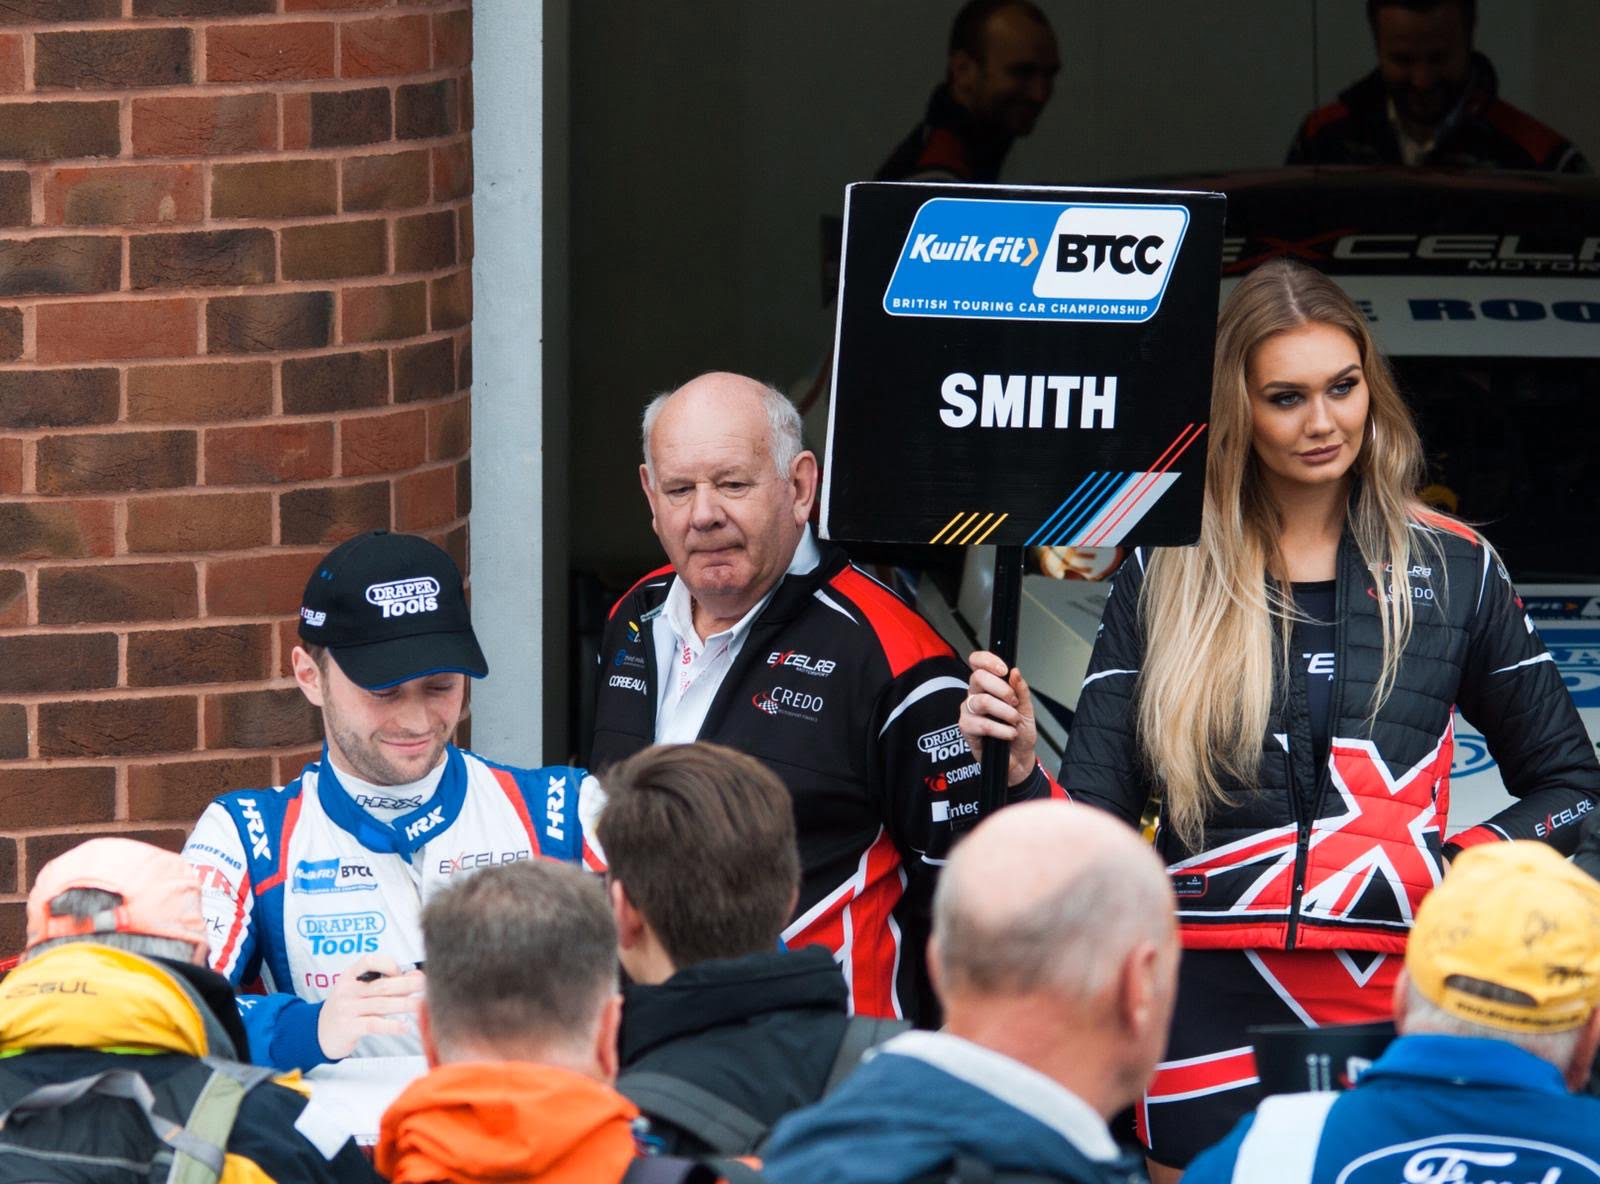 Excelr8 Motorsport BTCC at Brands Hatch BTCC on Sunday 13th October 2019